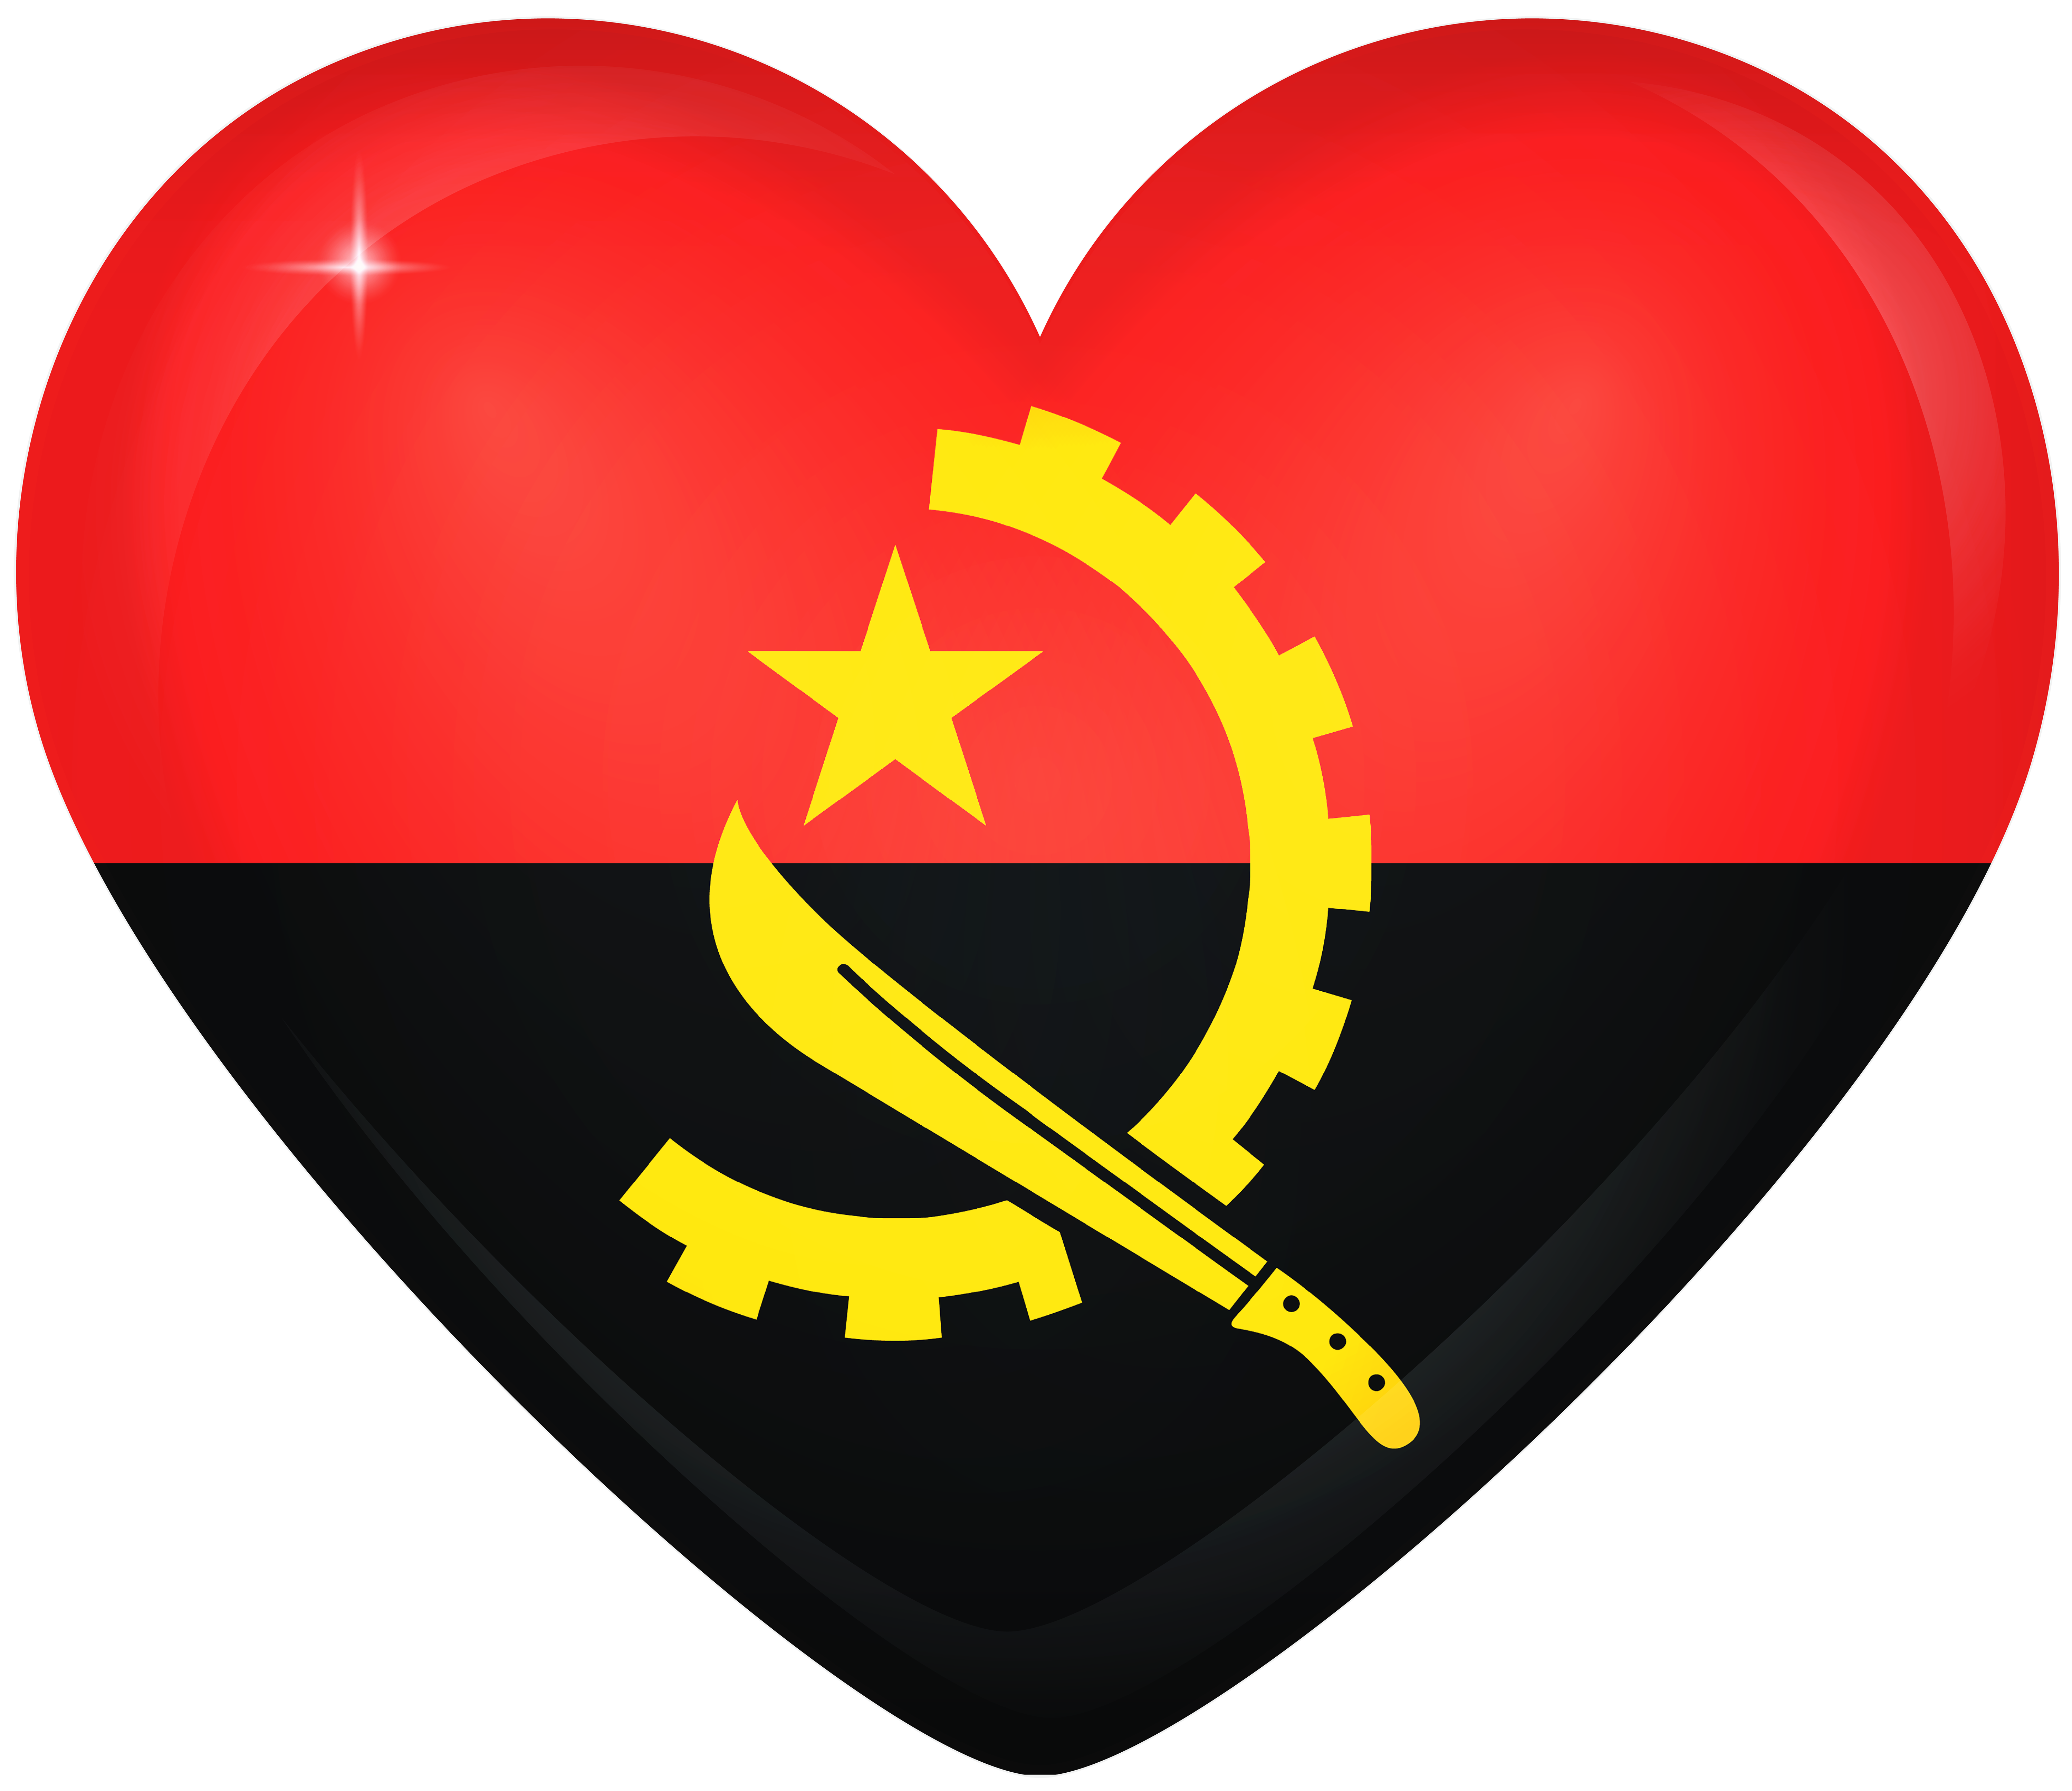 Wheat clipart heart. Angola large flag gallery